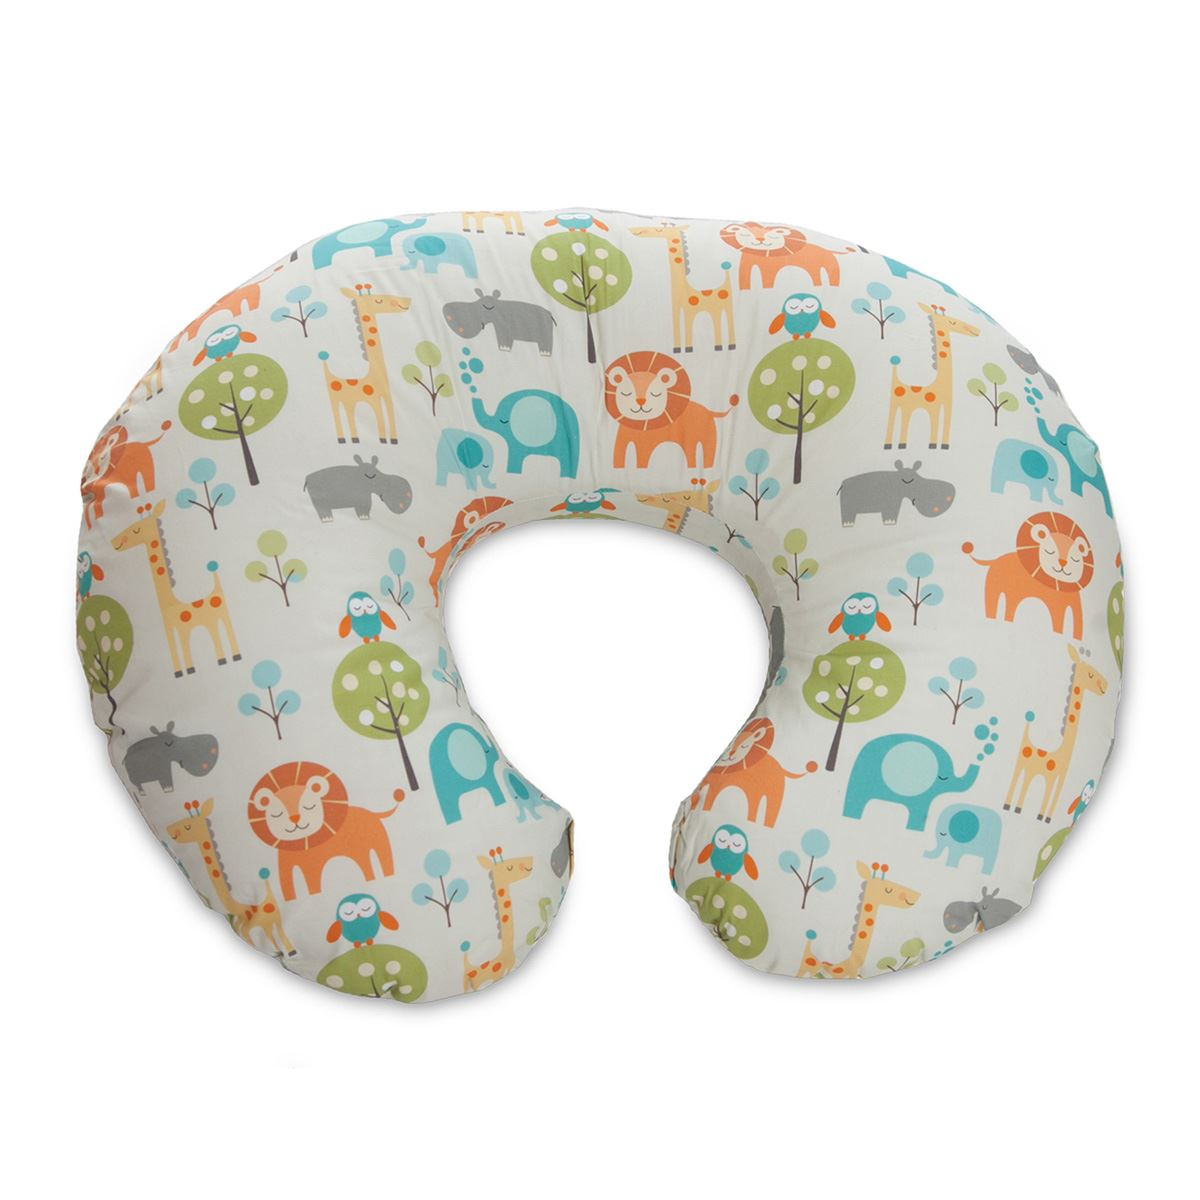 Boopy peaceful jungla unisex  - Sanborns